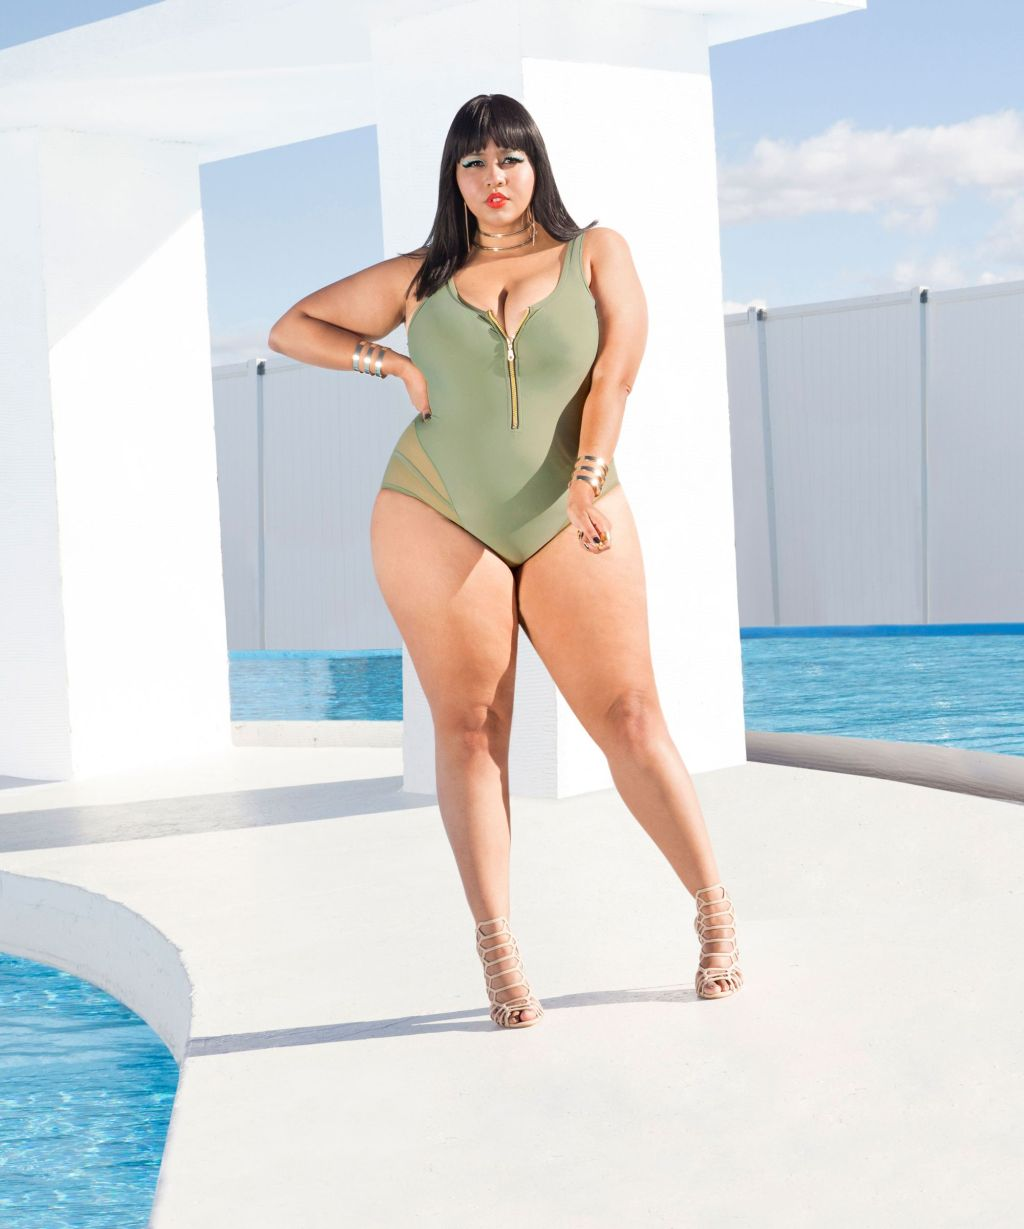 Gabi Fresh Swimsuit Collection fro 2016 - BellaNaija - Janaury 2016